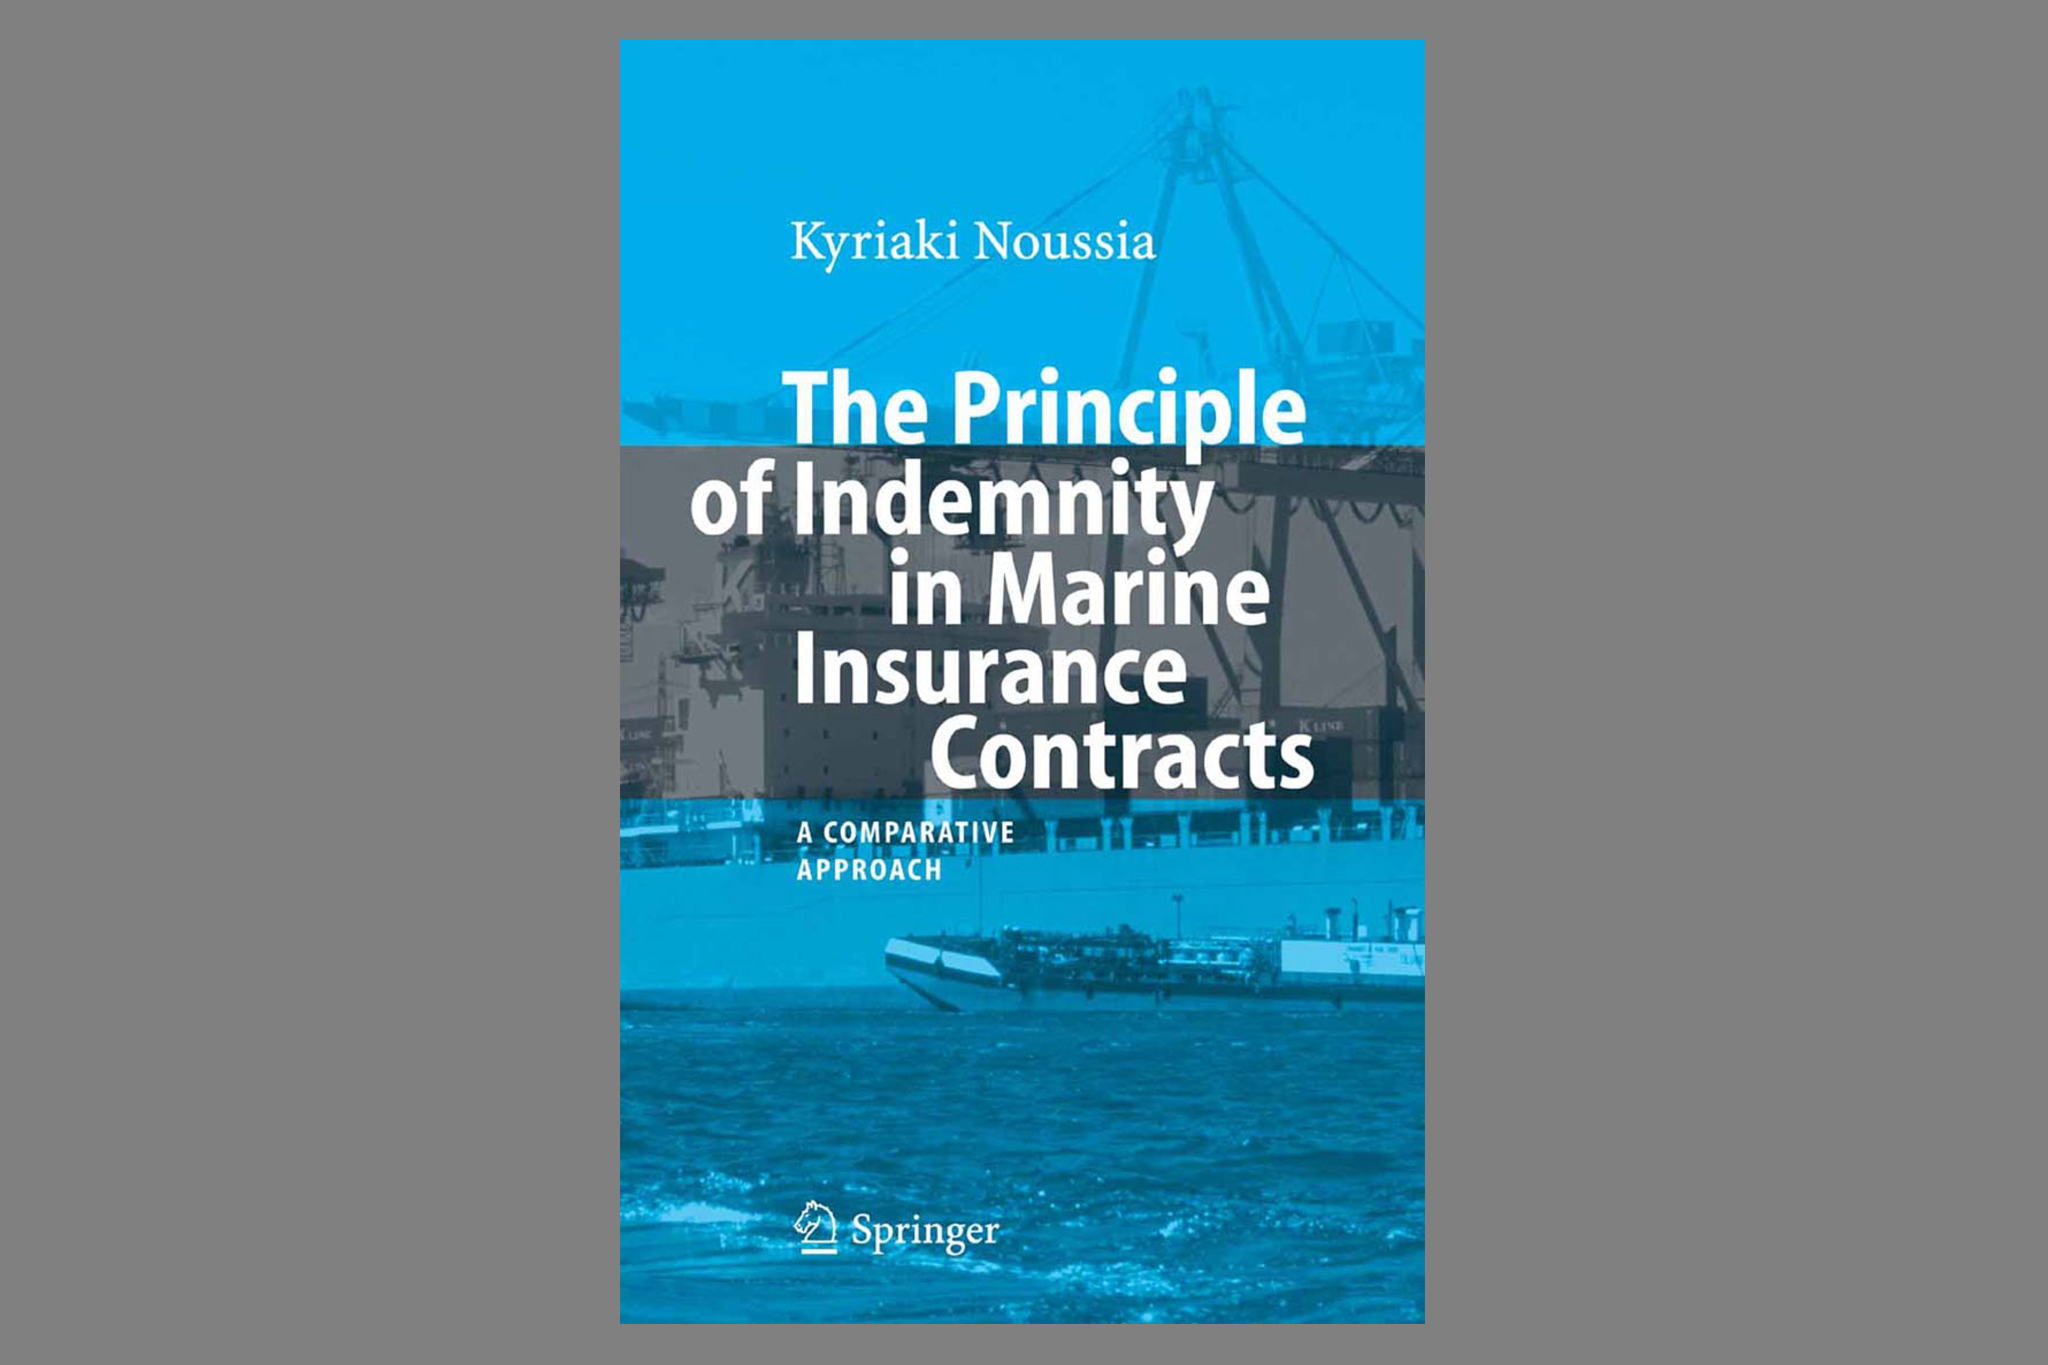 The-Principle-of-Indemnity-in-Marine-Insurance-Contracts